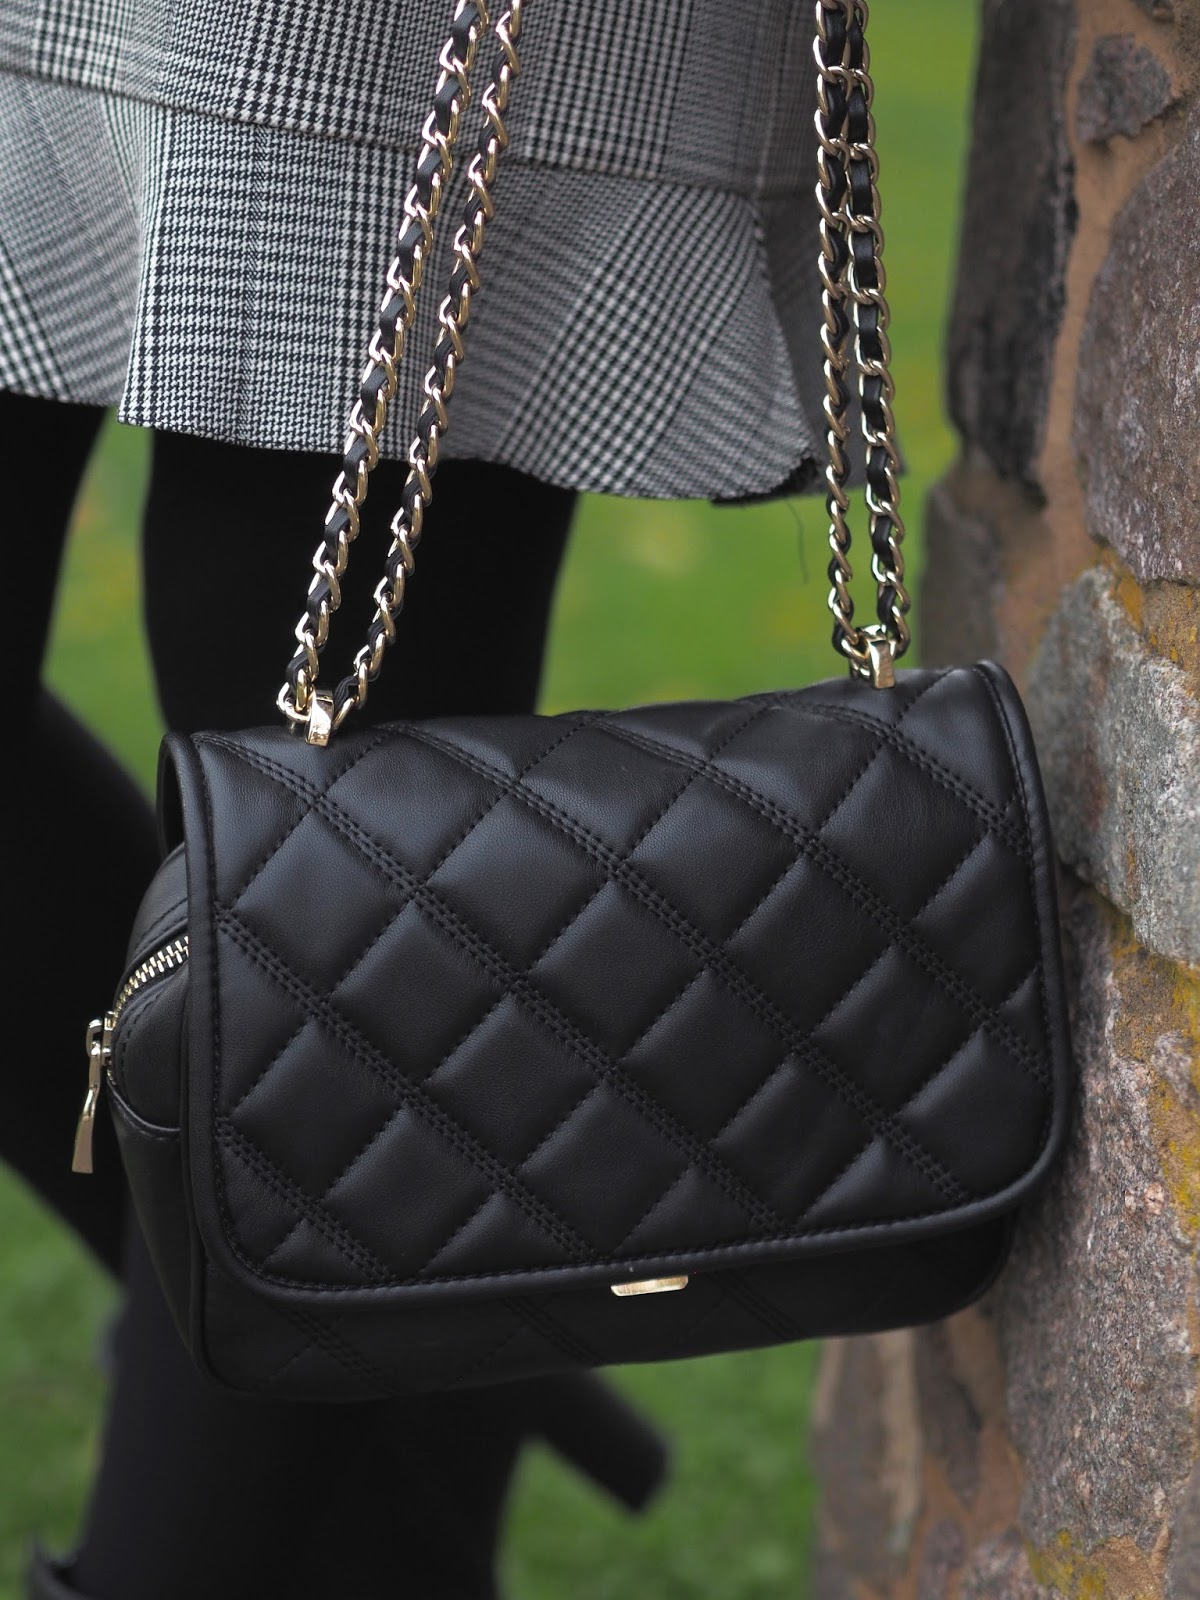 Zara long sleeve Prince of Wales check dress \ black quilted handbag \ Priceless Life of Mine \ Over 40 lifestyle blog